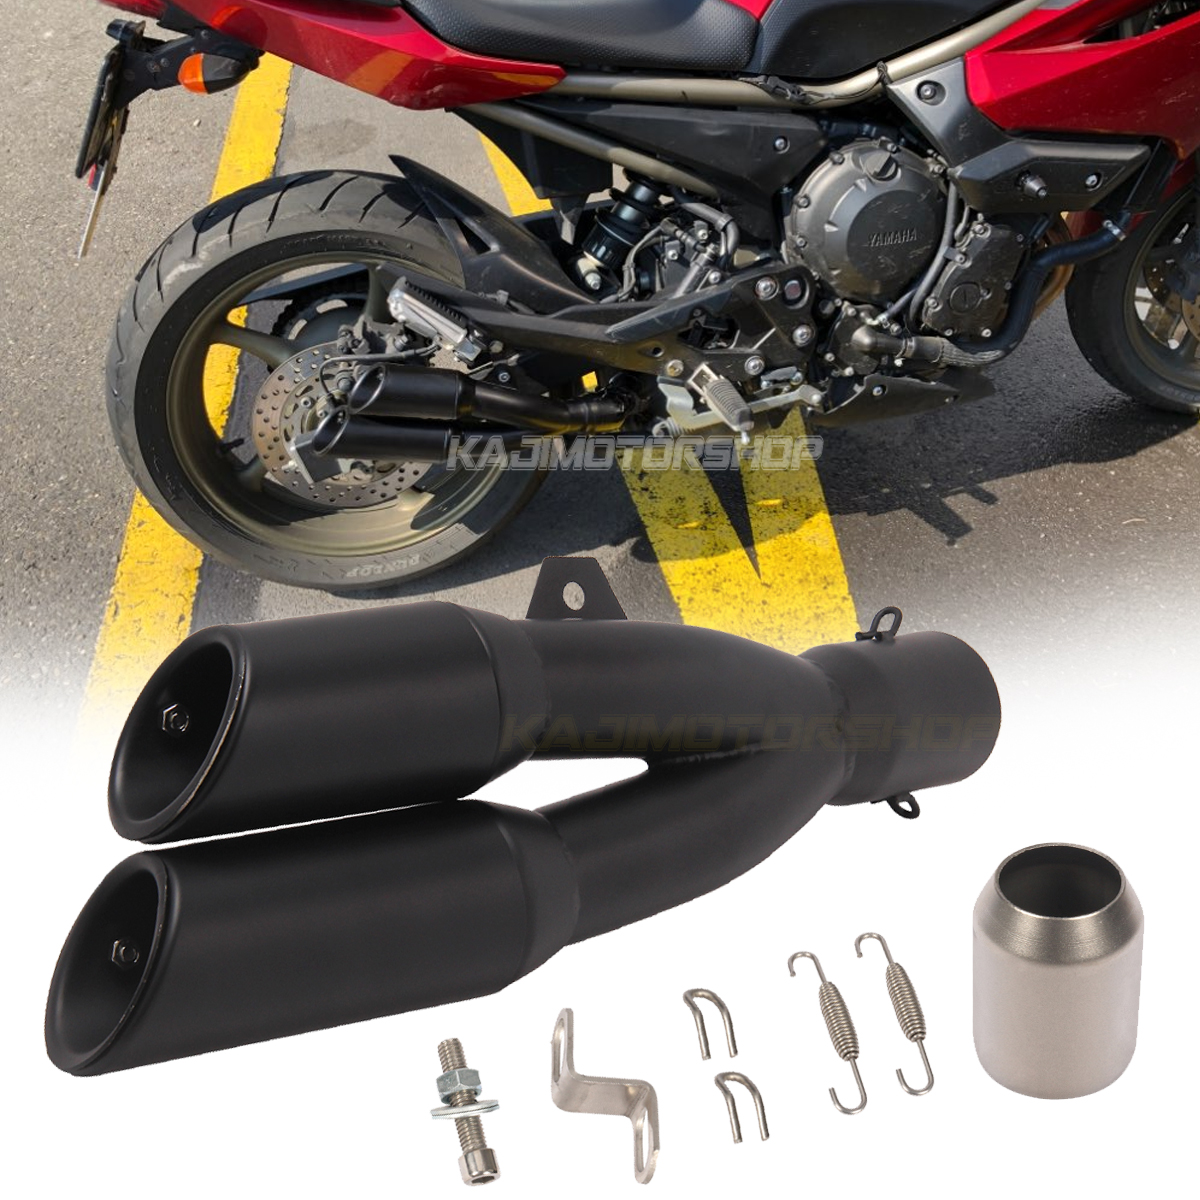 MGOD 38-51 mm Universal Motorcycle Exhaust Pipe Dual Tail Outlet Pipe Slip On Dirt Street Bike Motorcycle